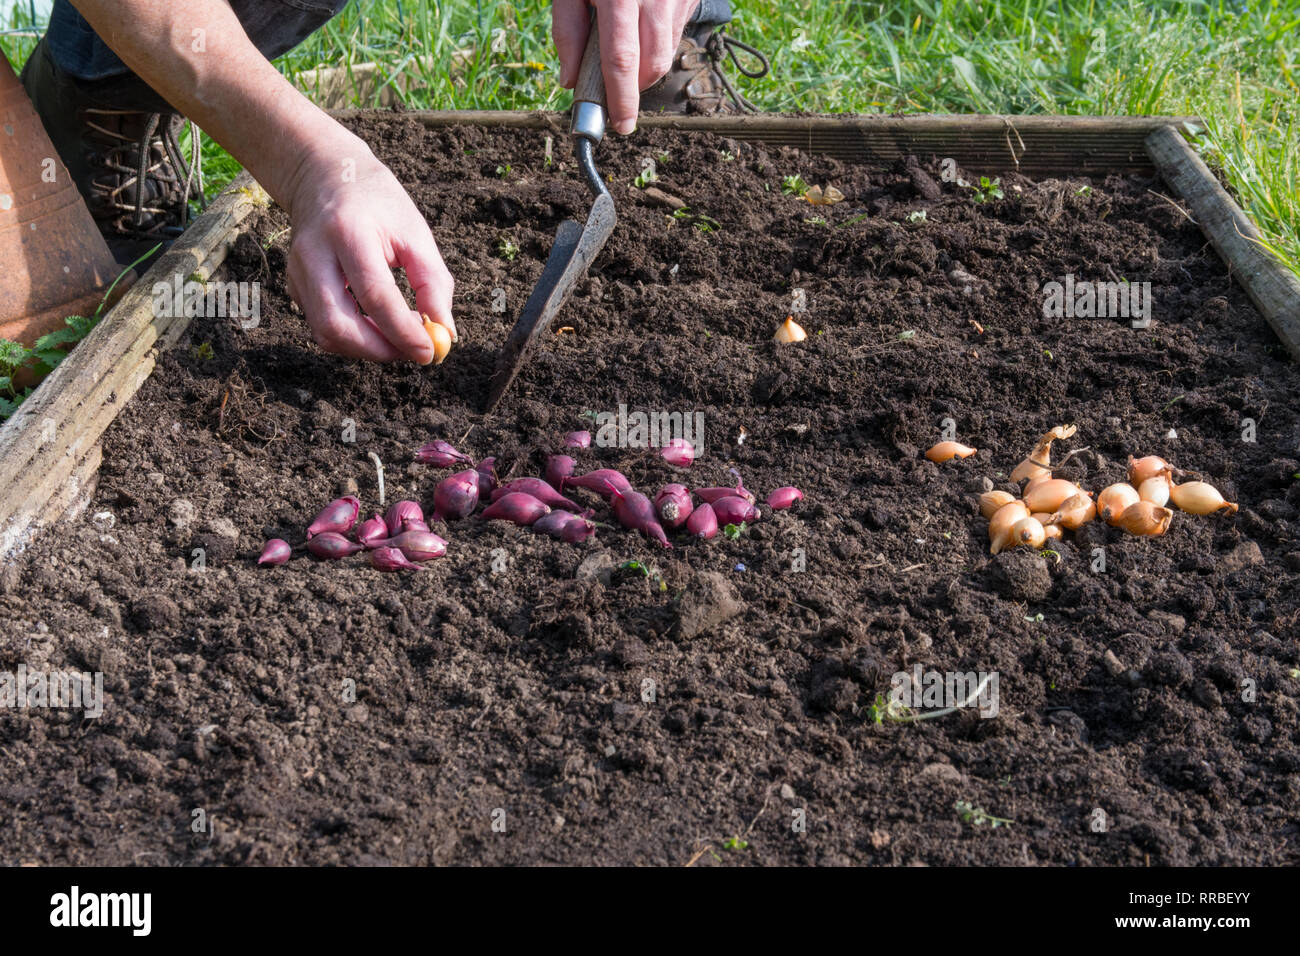 Man planting onion sets with trowel in ground - Stock Image